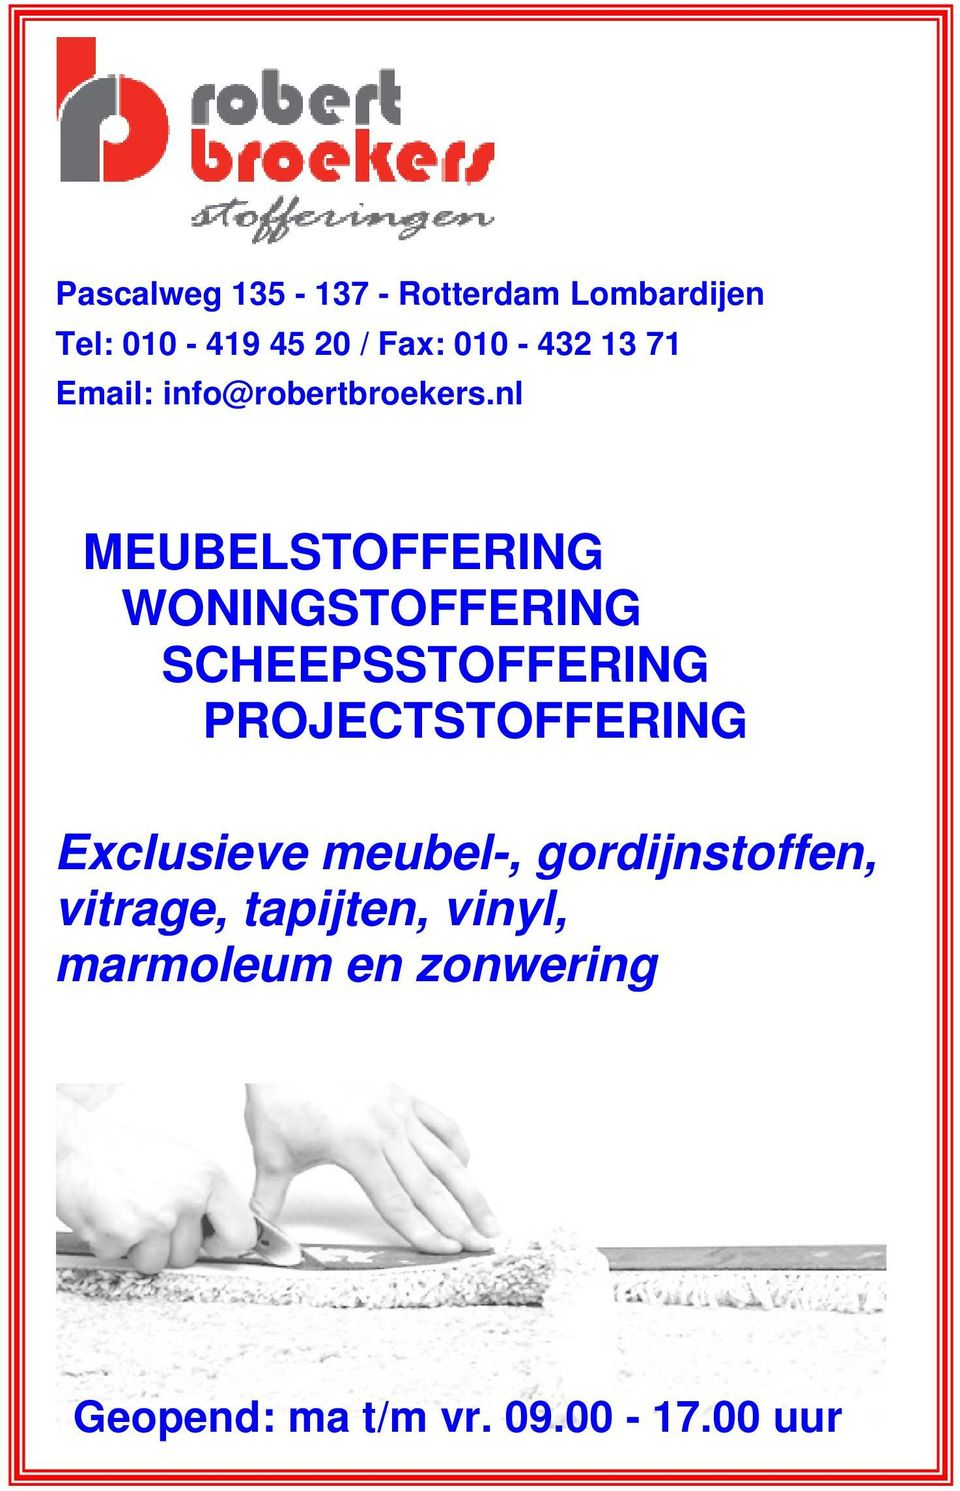 nl MEUBELSTOFFERING WONINGSTOFFERING SCHEEPSSTOFFERING PROJECTSTOFFERING